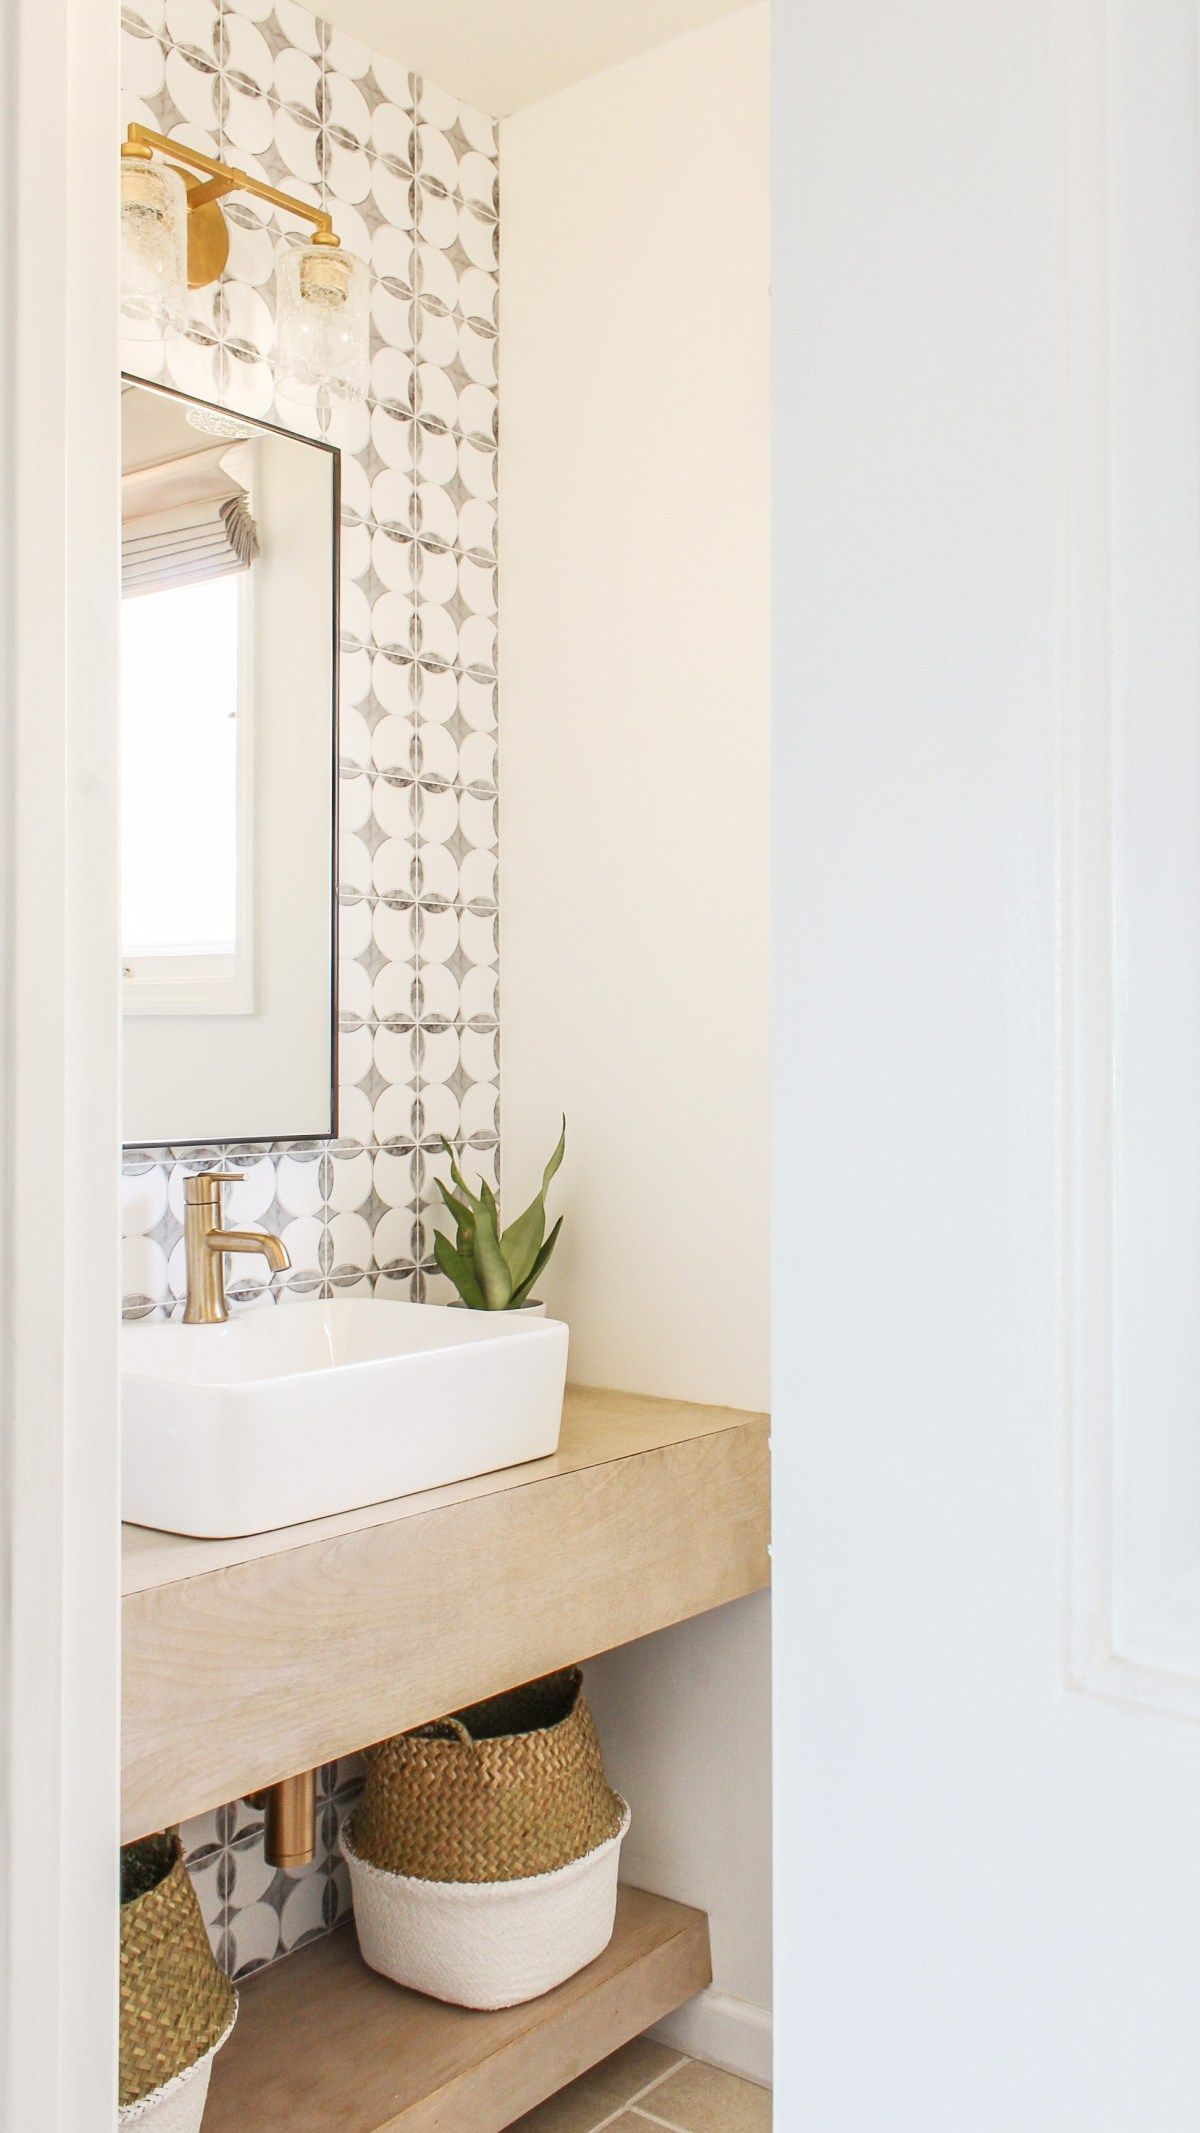 Modern Farmhouse Before and After Home Tour - Designing Vibes - Interior Design, DIY and Lifestyle